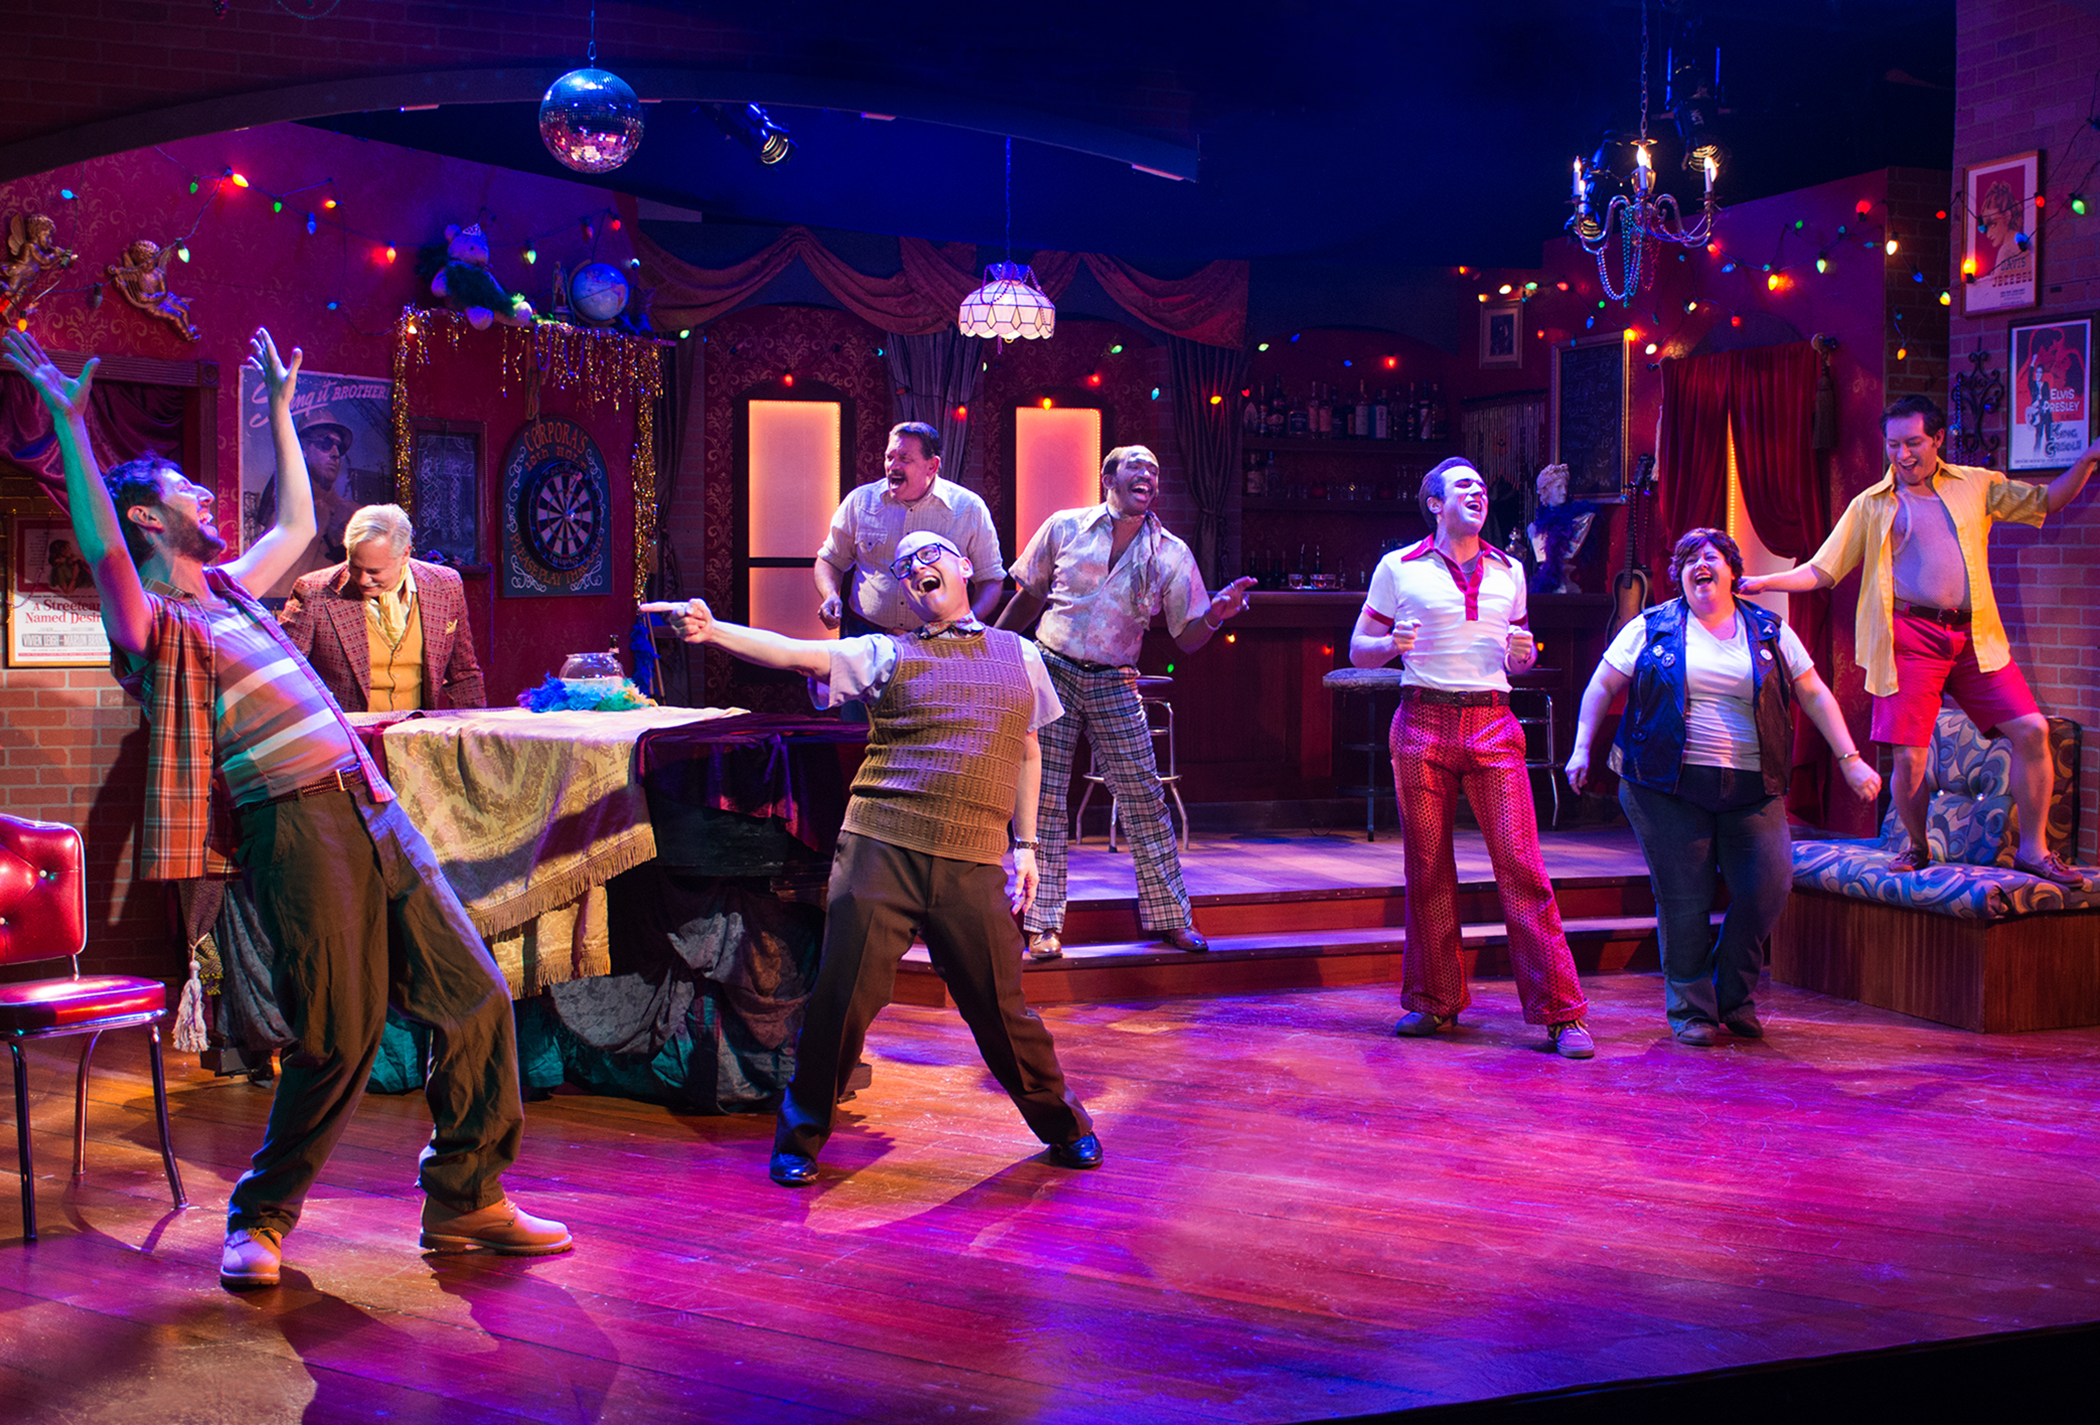 Pictured L to R: The regulars of the UpStairs Lounge (Chris Morrell, Cameron Weston, David Bicha, Gary M. Giurbino, Anthony Rollins-Mullens*, Coleton Schmitto, Jessica Coker, and Jesse Cortez) live in their own kind of paradise. Photo by Lois Tema. *Appears courtesy of Actor's Equity Association, the Union of Professional Actors and Stage Managers in the U.S.